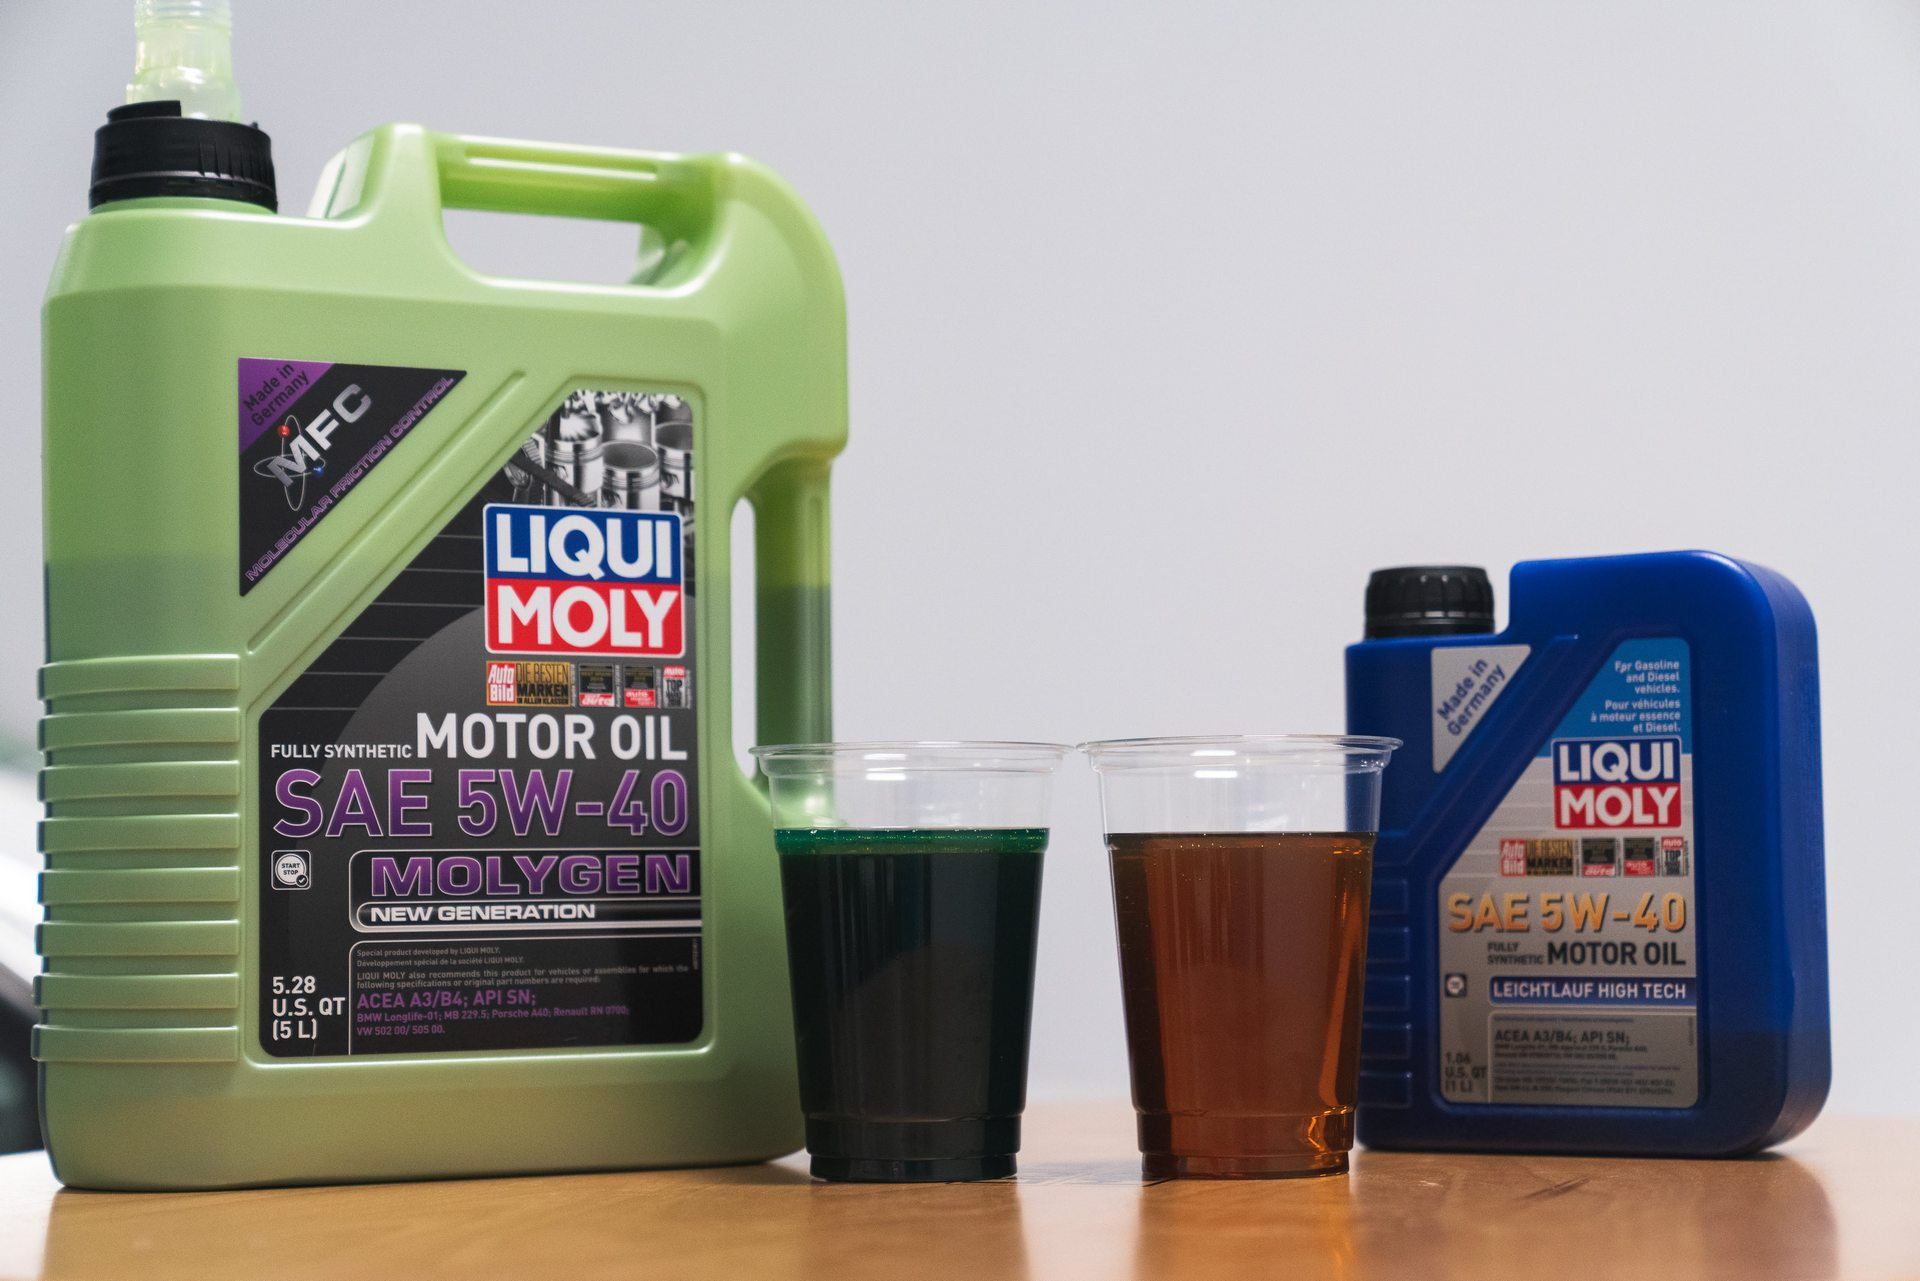 LIQUI MOLY Molygen 5W-40 Comparison